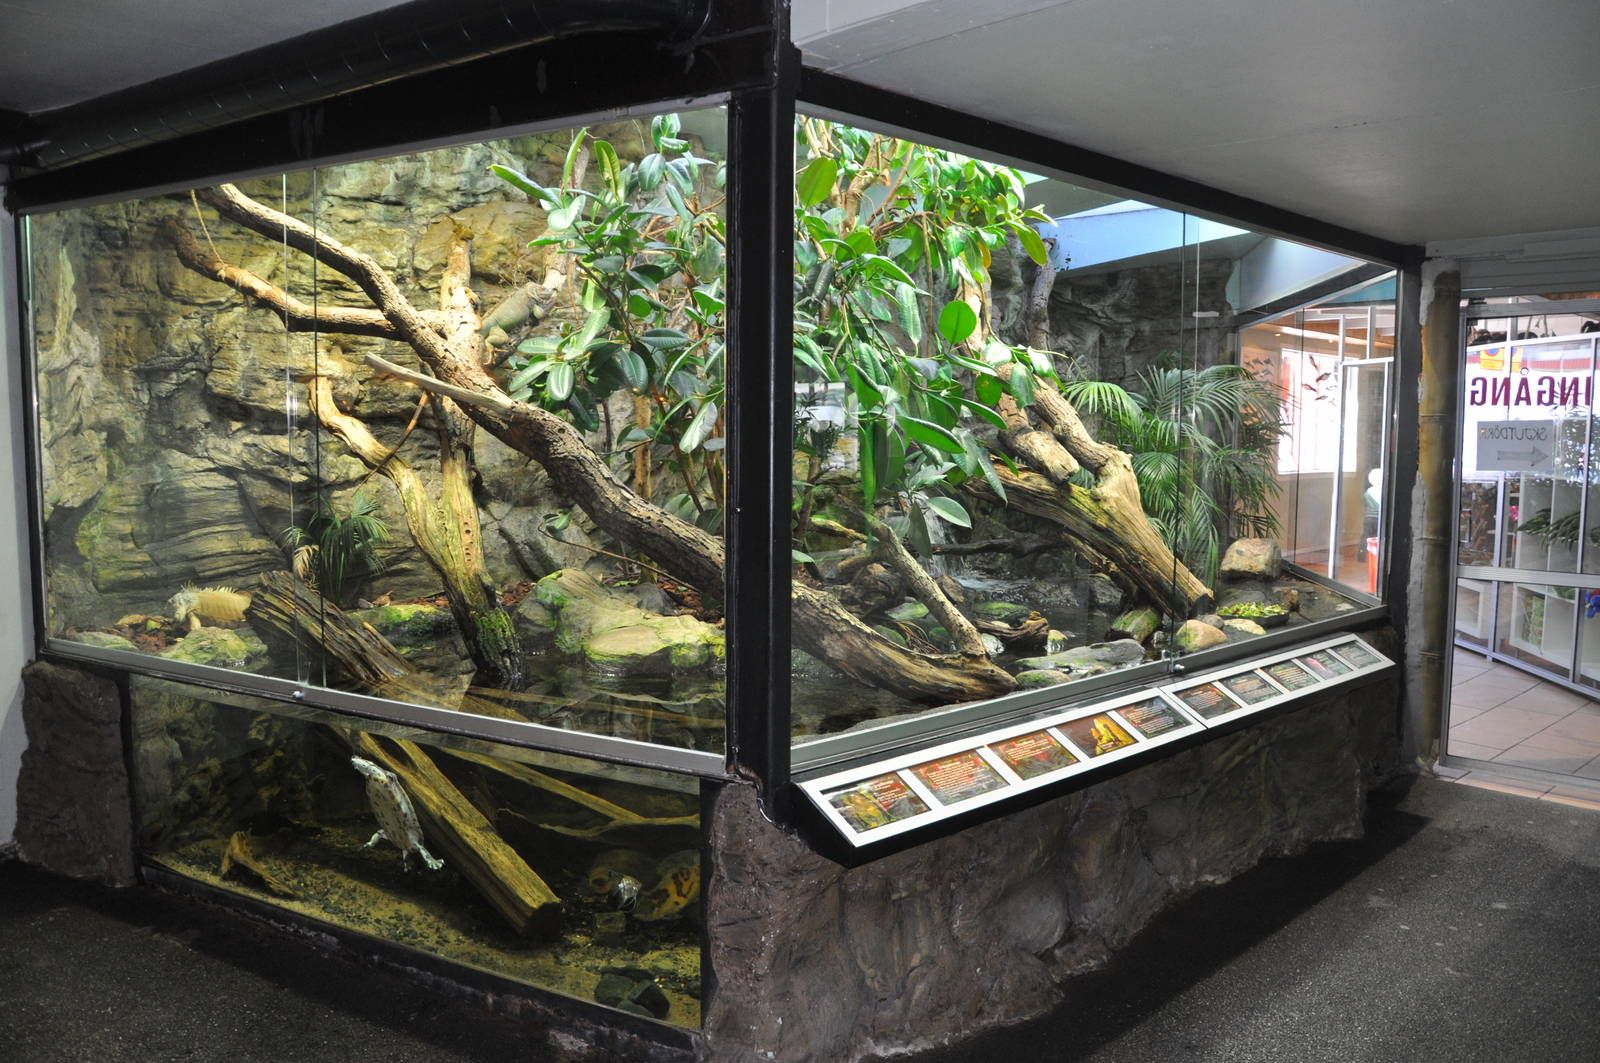 reptile tanks | Terrarium For Iguana | Reptile Tanks For Sale ...